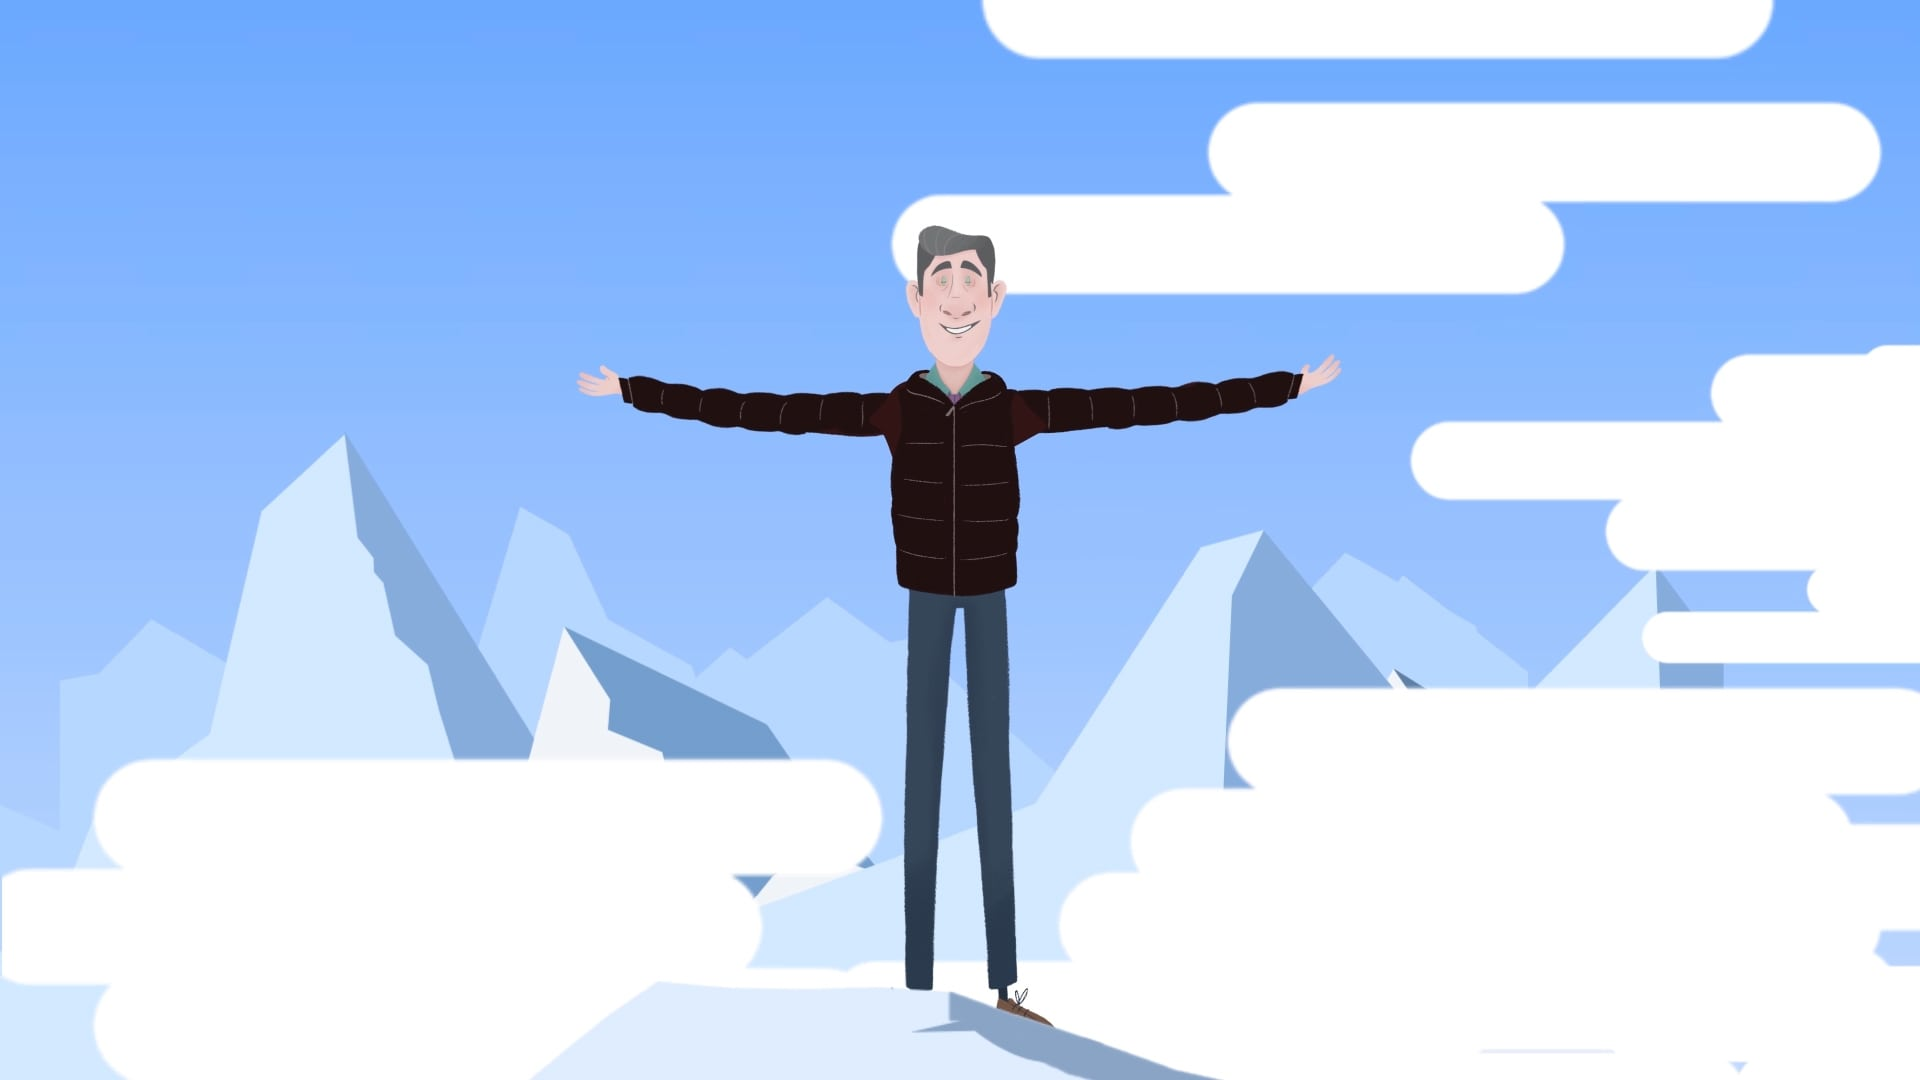 character animation for prospective investors - man with arms open wide